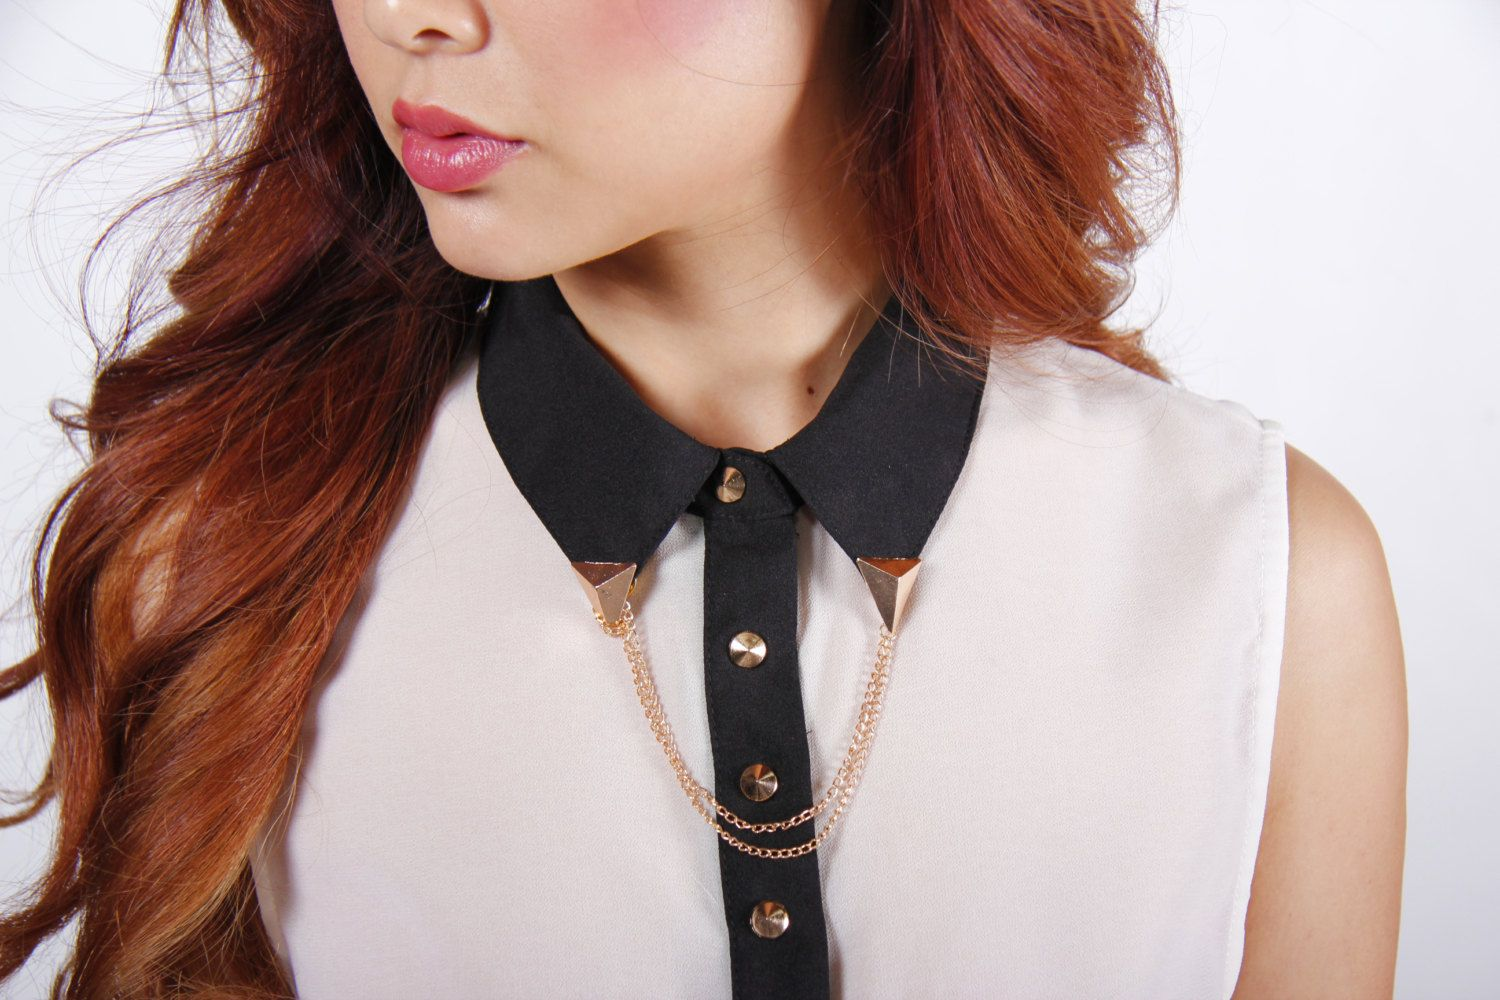 Gold Chain Collar Pin by OneSingleStrand on Etsy https://www.etsy.com/listing/226745530/gold-chain-collar-pin